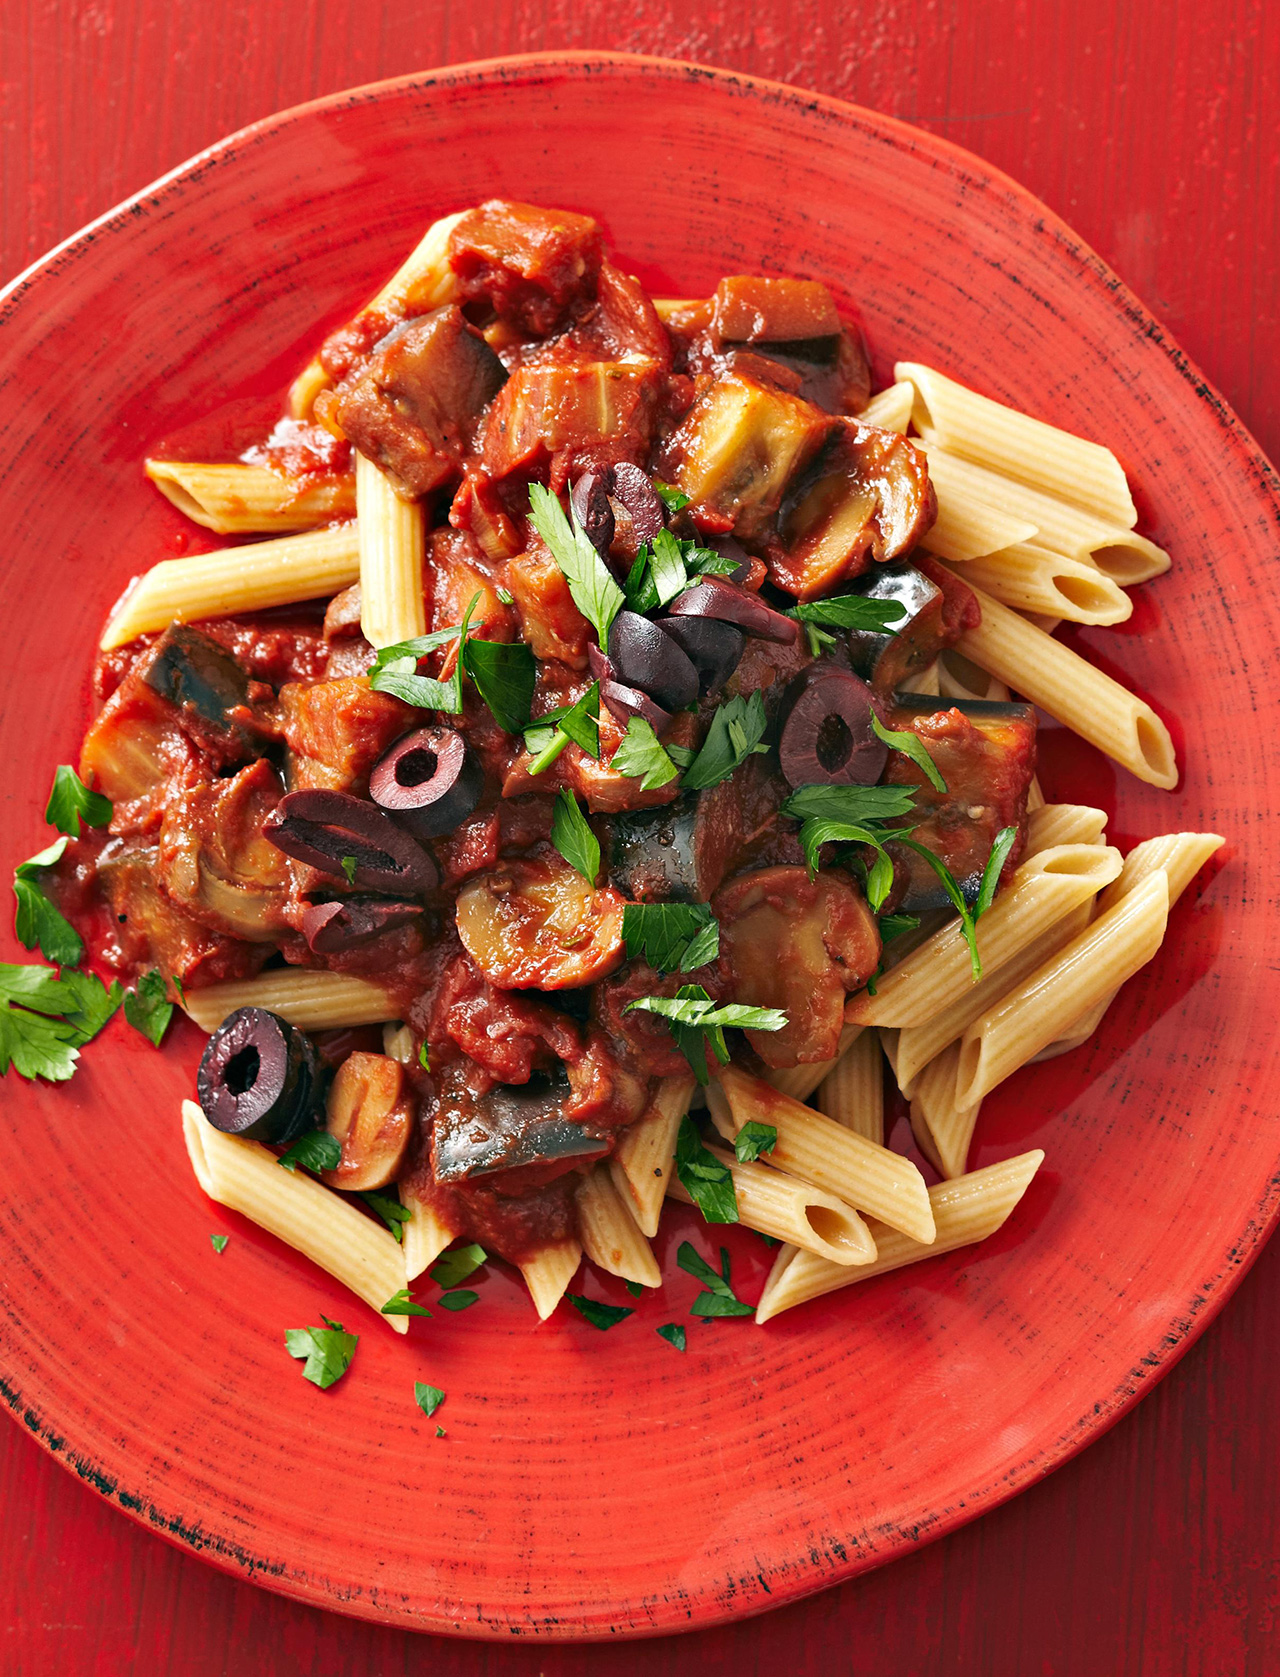 Penne with Tomato-Eggplant Sauce